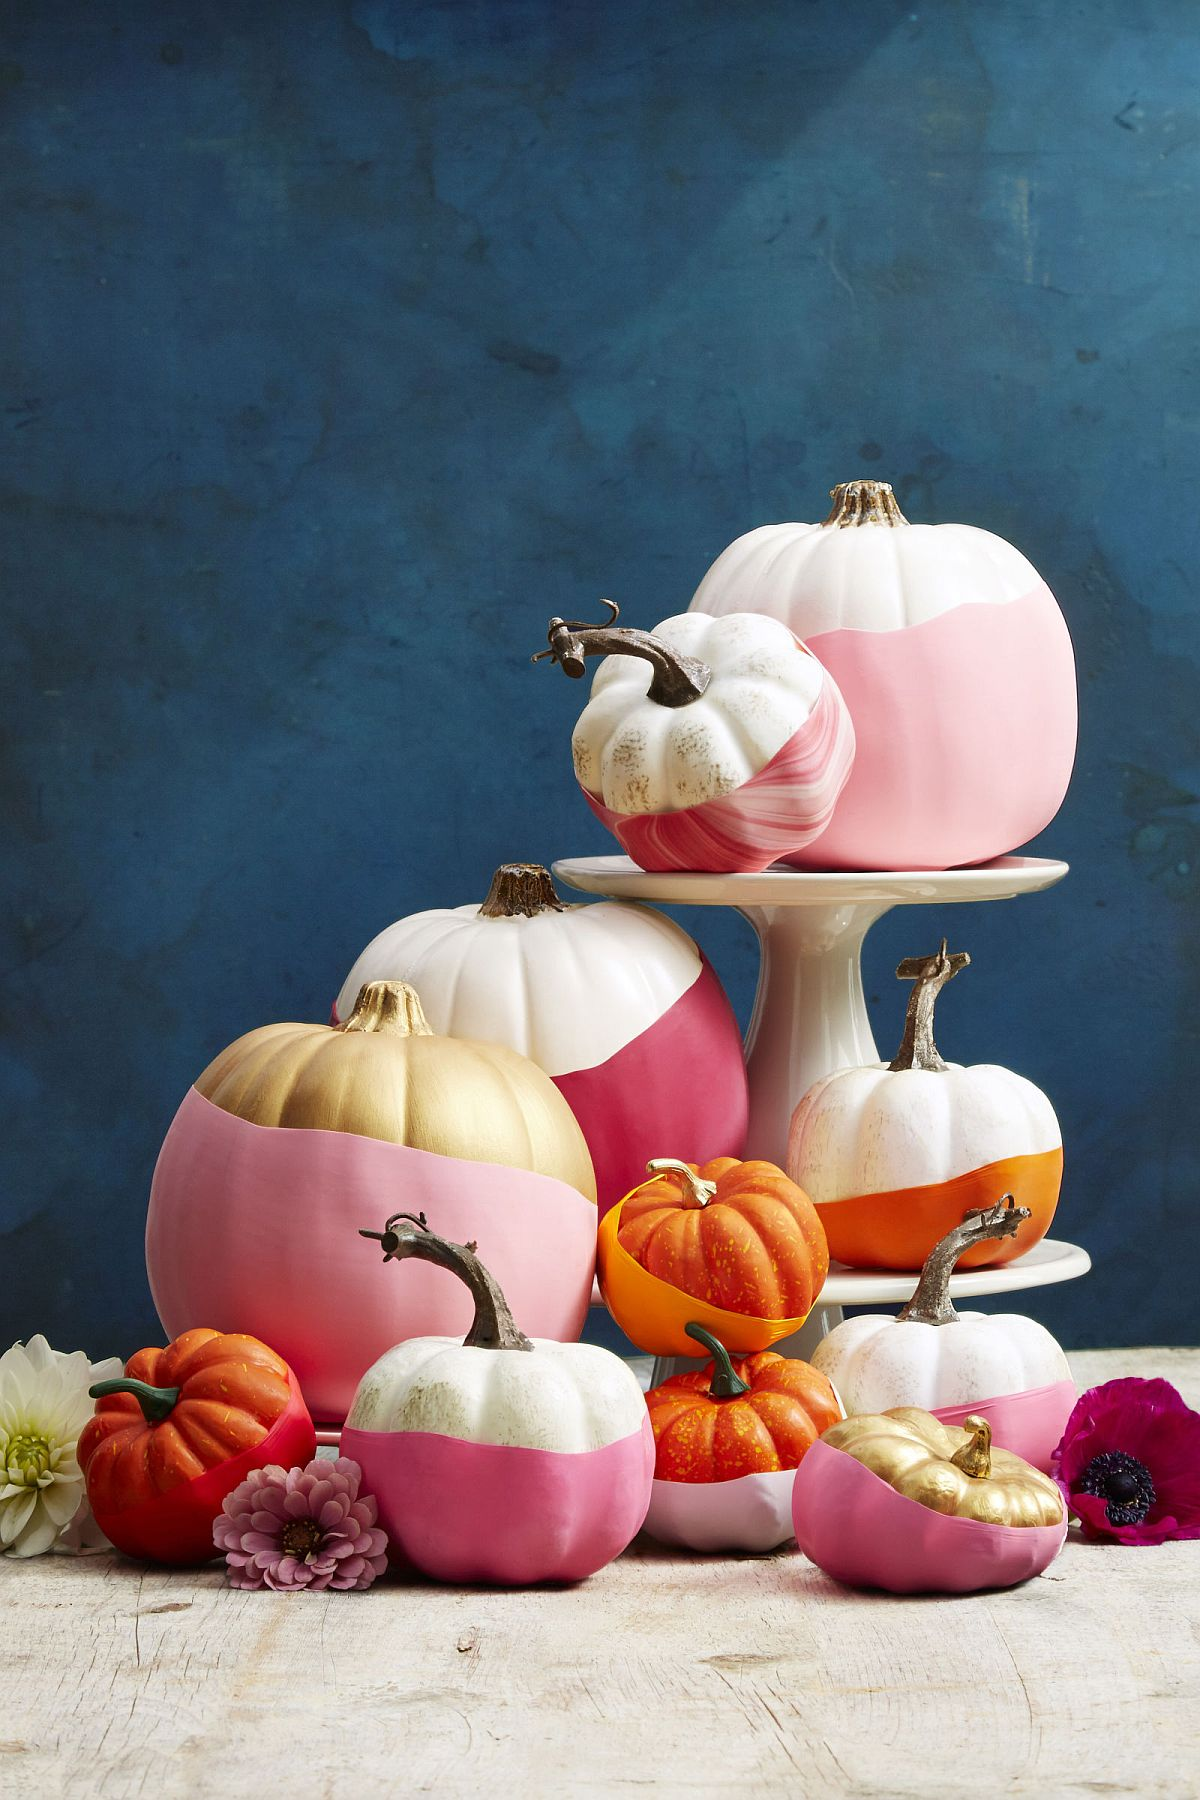 & 25 Awesome Painted Pumpkin Ideas for Halloween and Beyond!